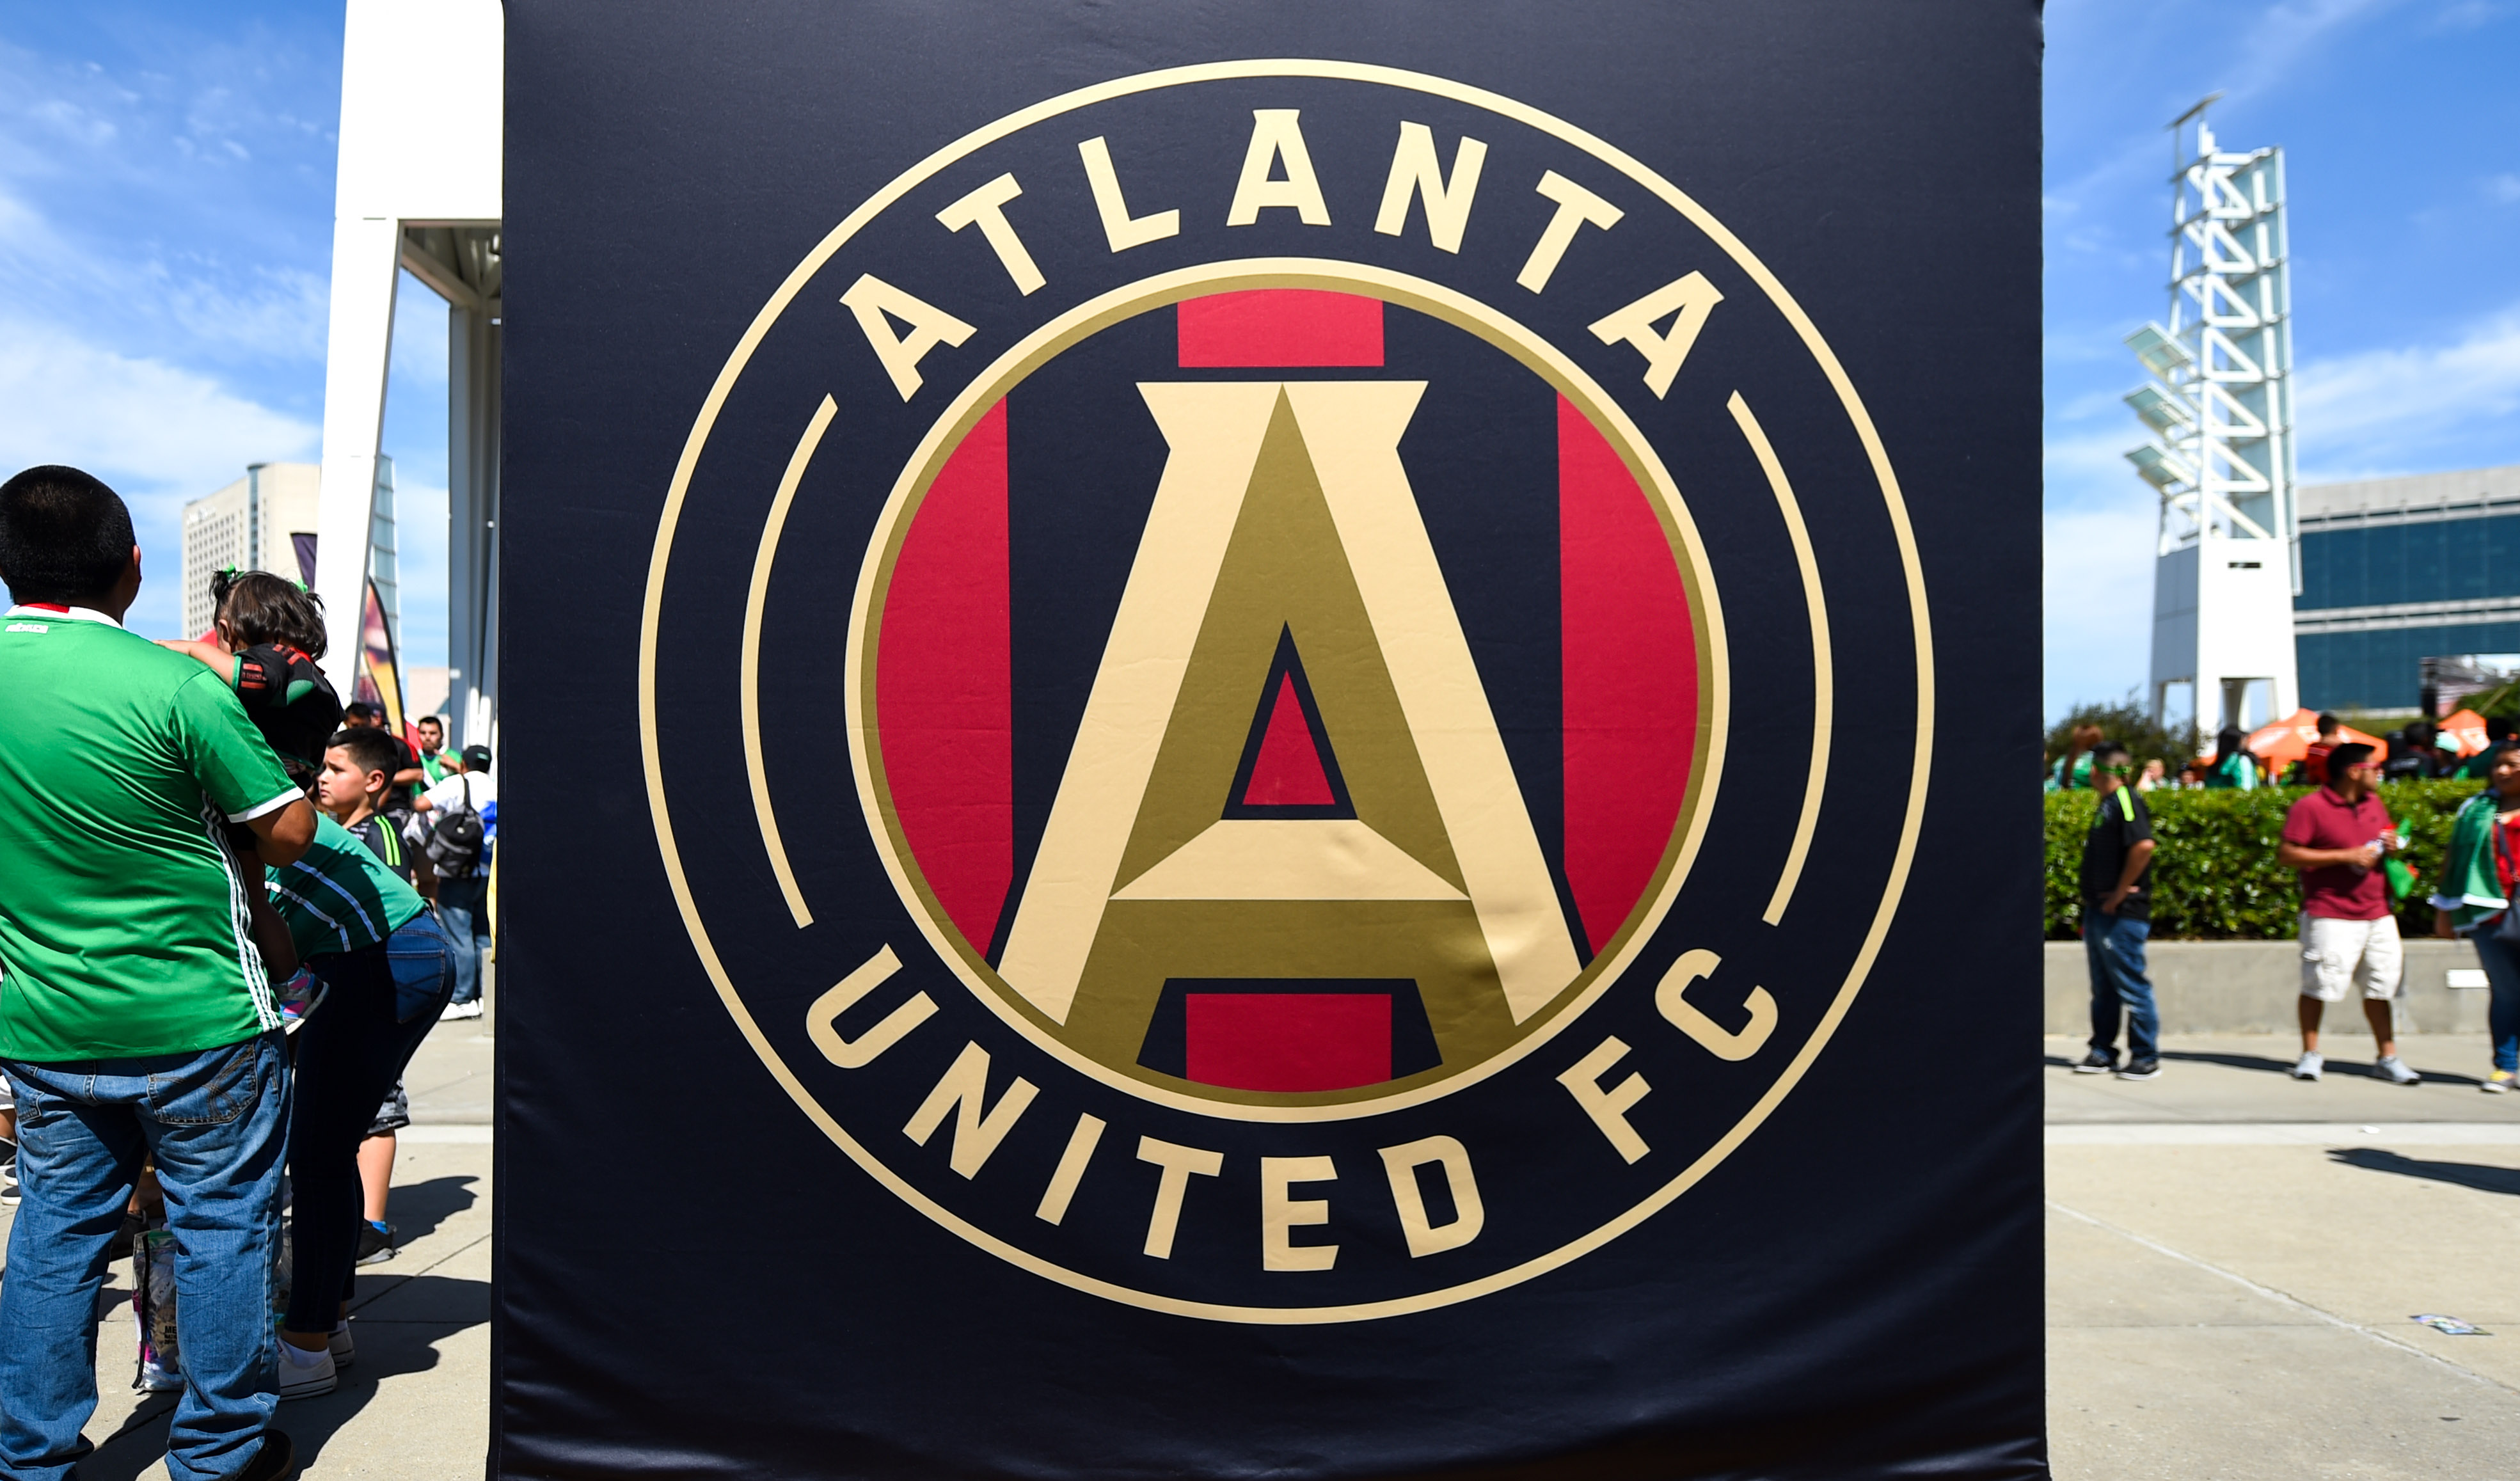 post schedule change fire home match dallas moved